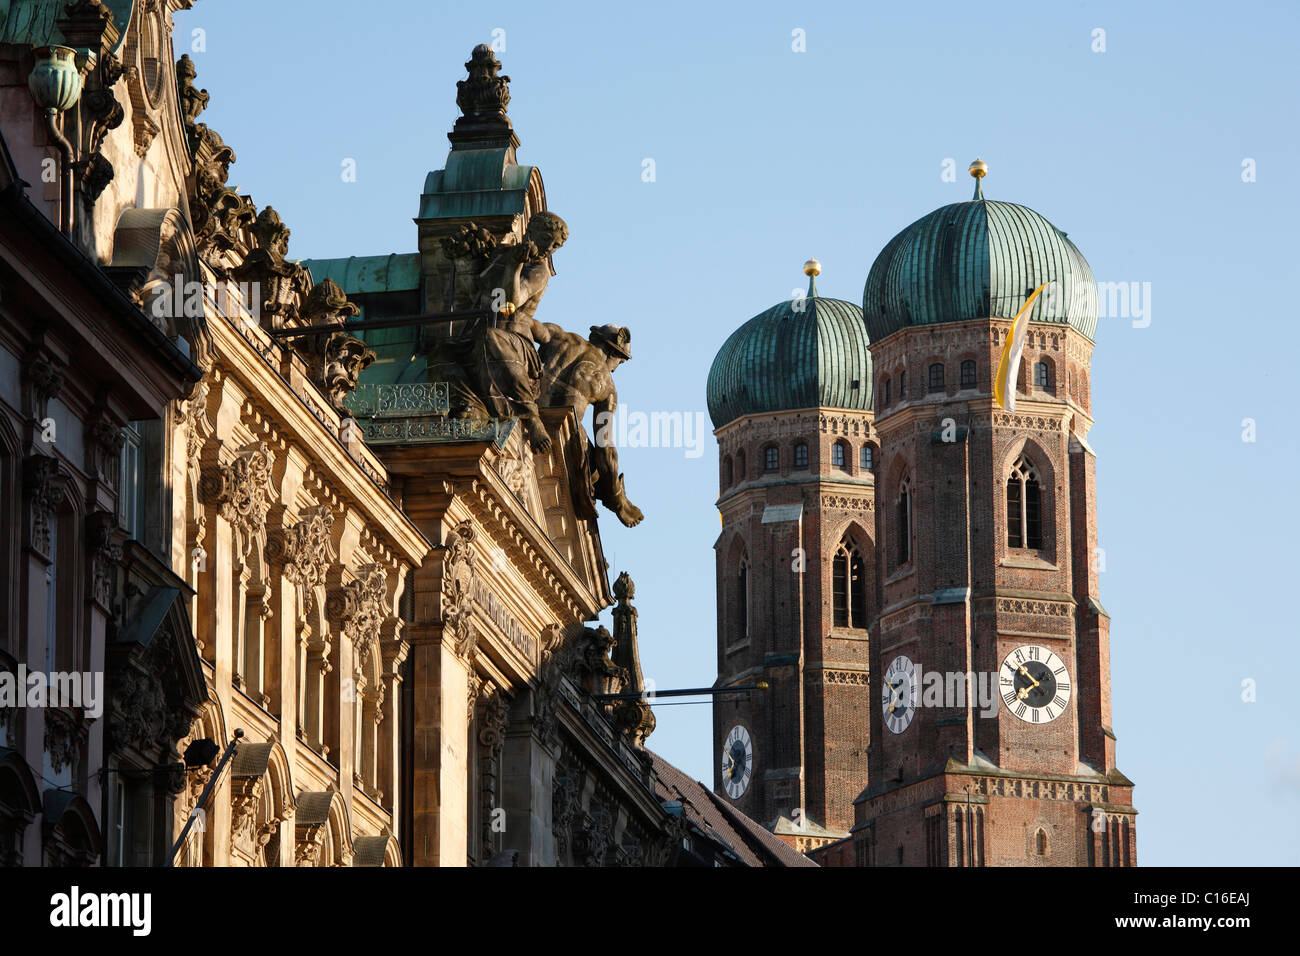 Palace in Kardinal-Faulhaber Street 10 and Frauenkirche Cathedral, Munich, Bavaria, Germany, Europe Stock Photo